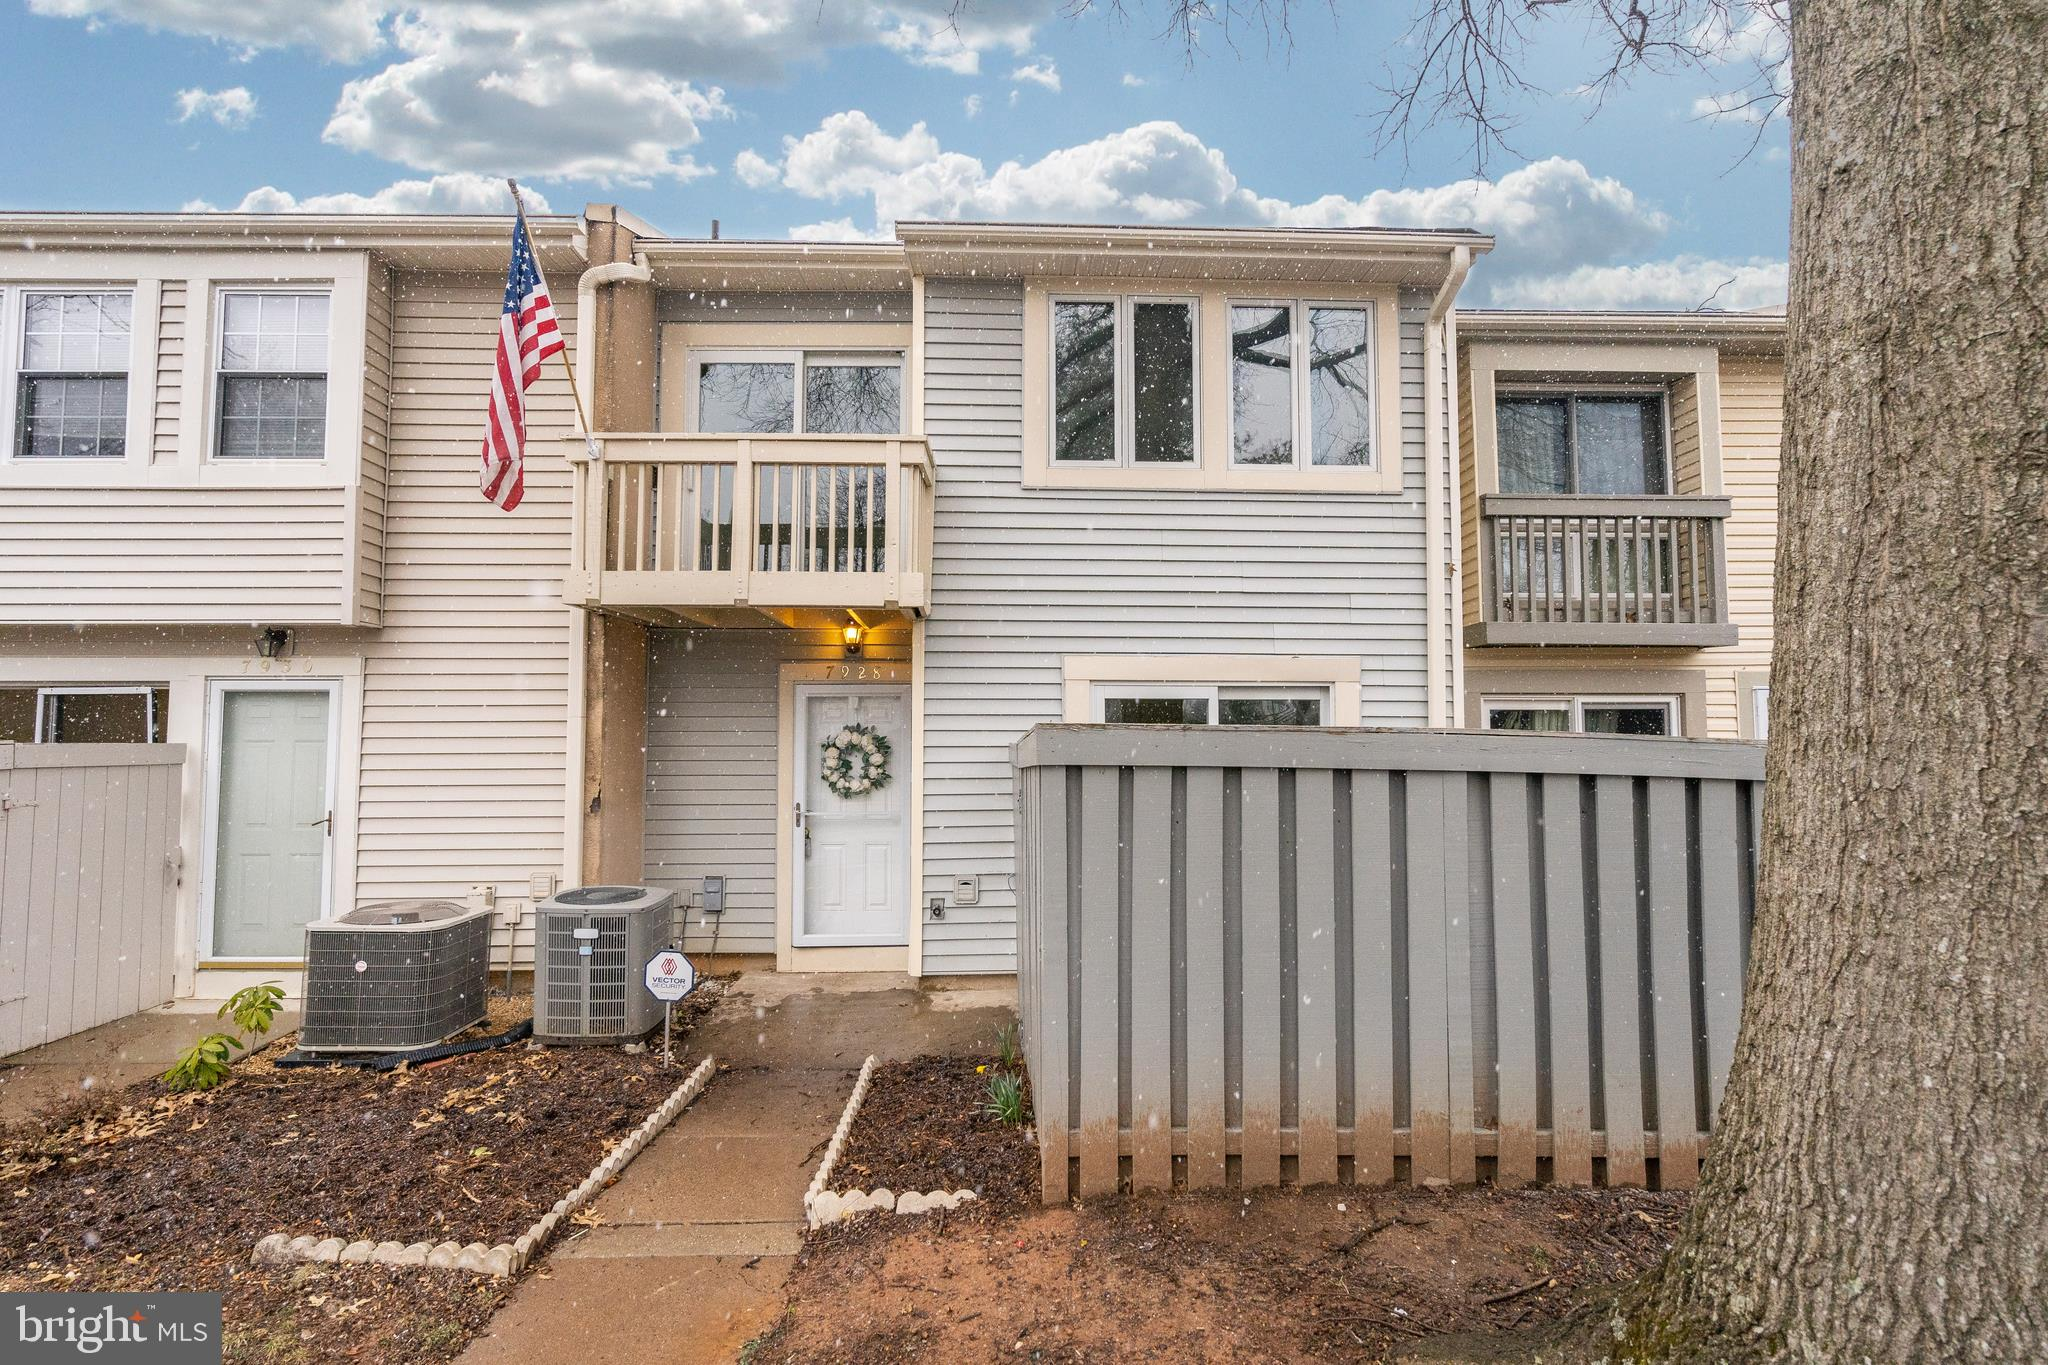 Quick access to Fairfax County Pkwy, 95, 395 & 495. 2 level townhouse, open and full of light. Balconies off living room and master bedroom. Large grass area and playground in community. Wood floors on main level, new carpet upstairs. Entire townhouse freshly painted. Basement is laundry & storage.